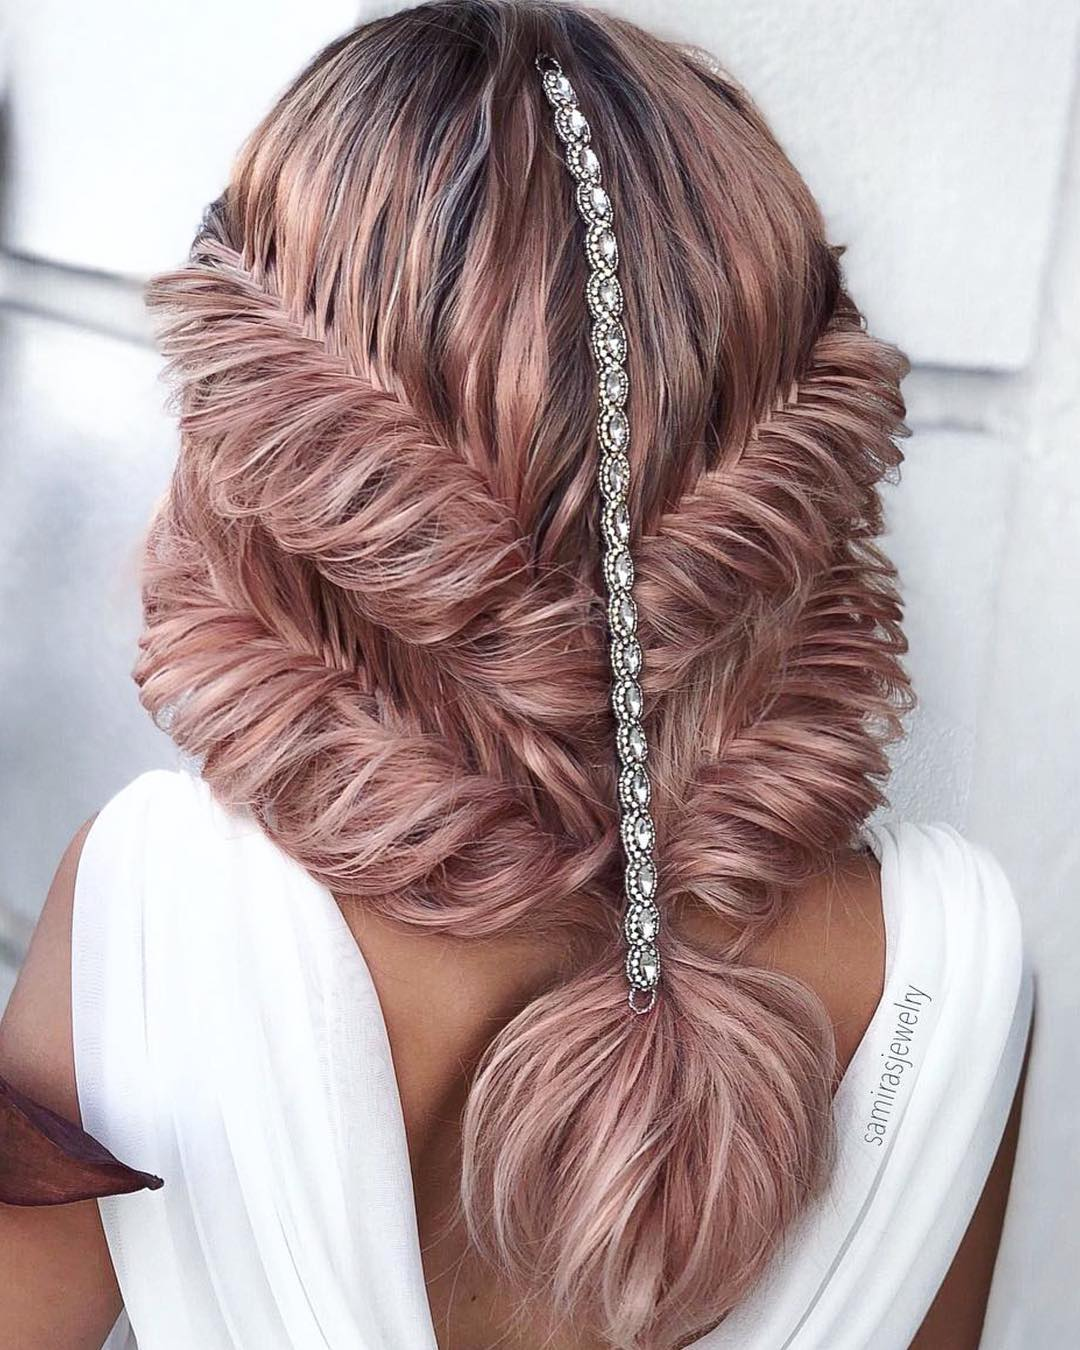 10 Gorgeous Braided Hairstyles You will Love – Latest Hairstyle ...